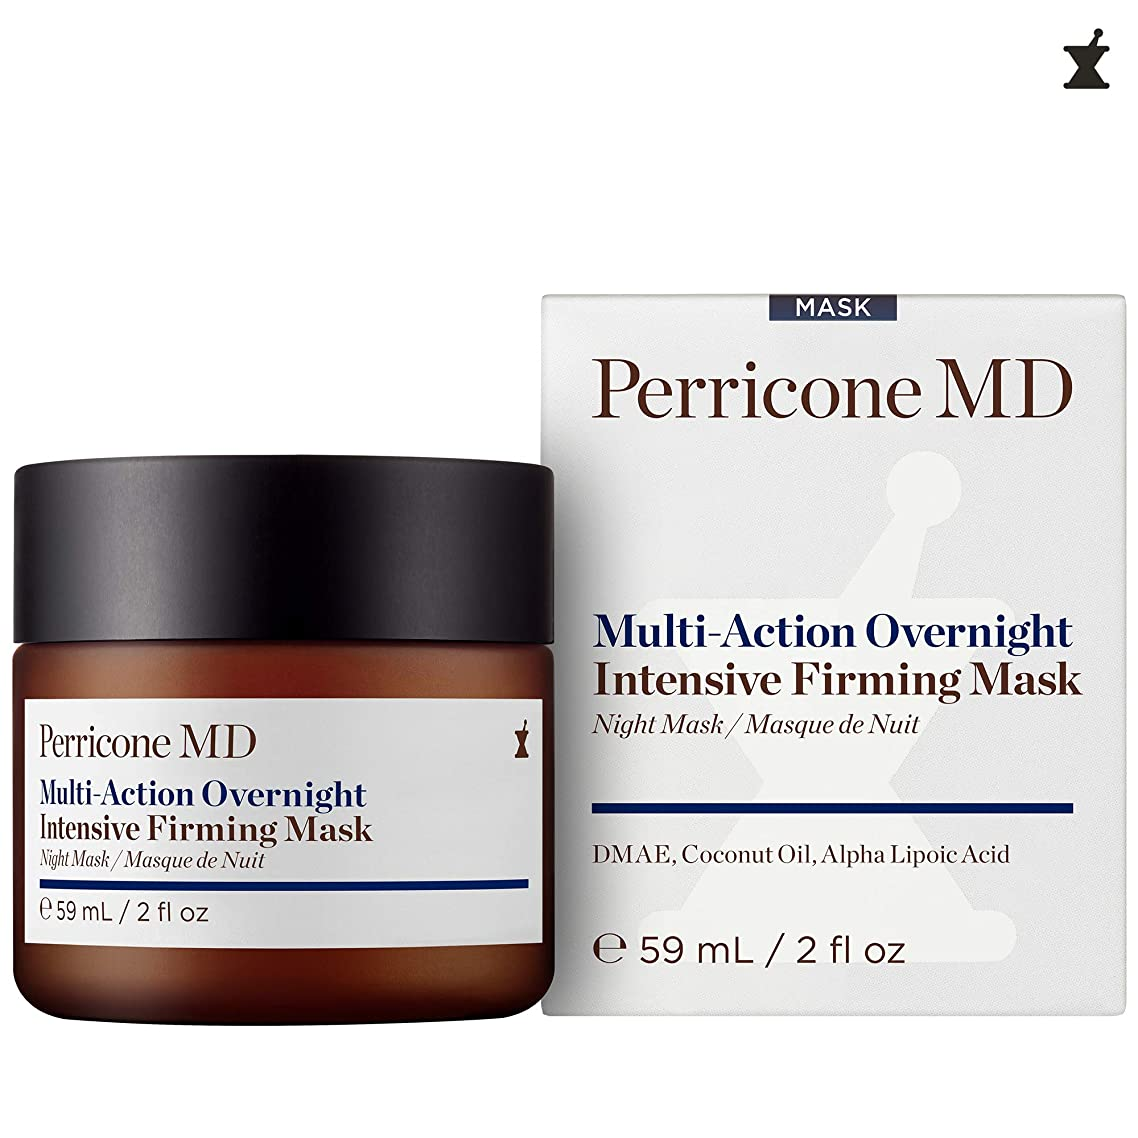 Perricone MD Multi-Action Overnight Intensive Firming Mask for Unisex, 2 Ounce